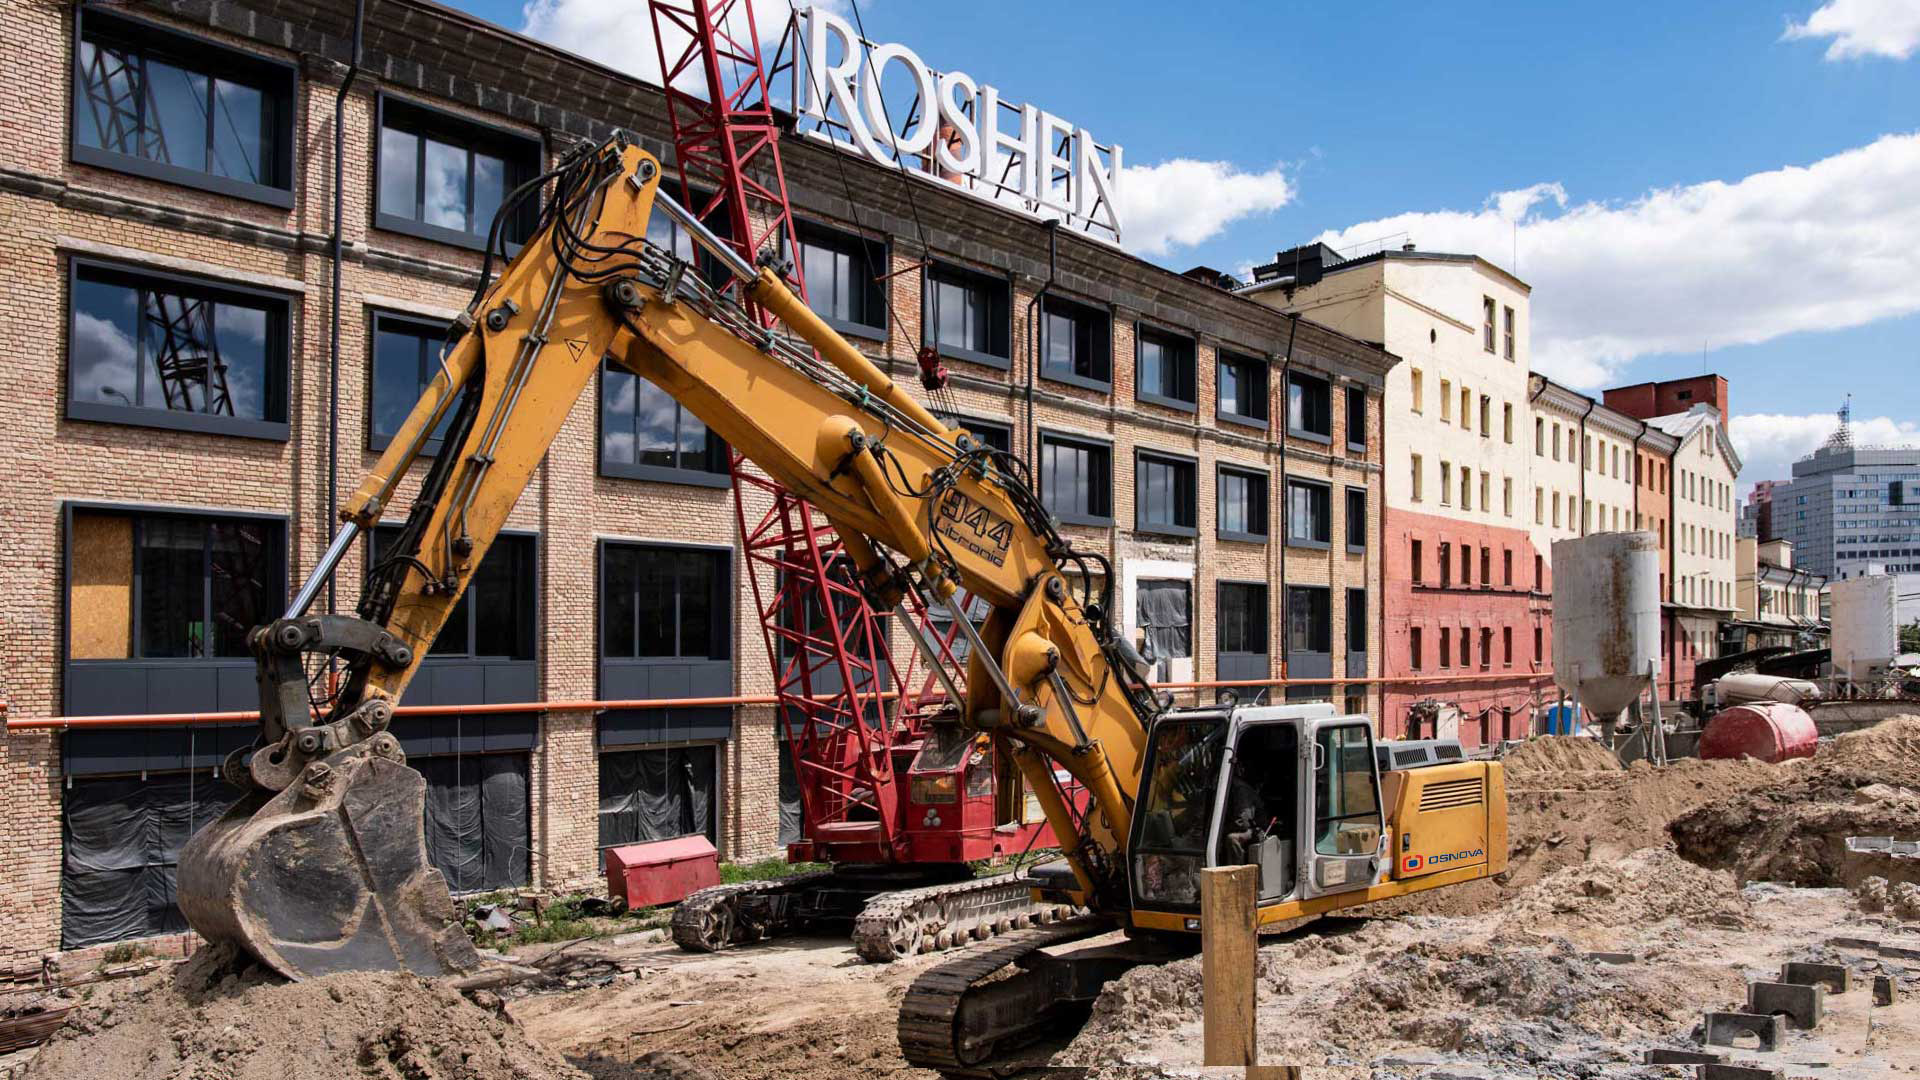 Roshen, Kyiv confectionery factory